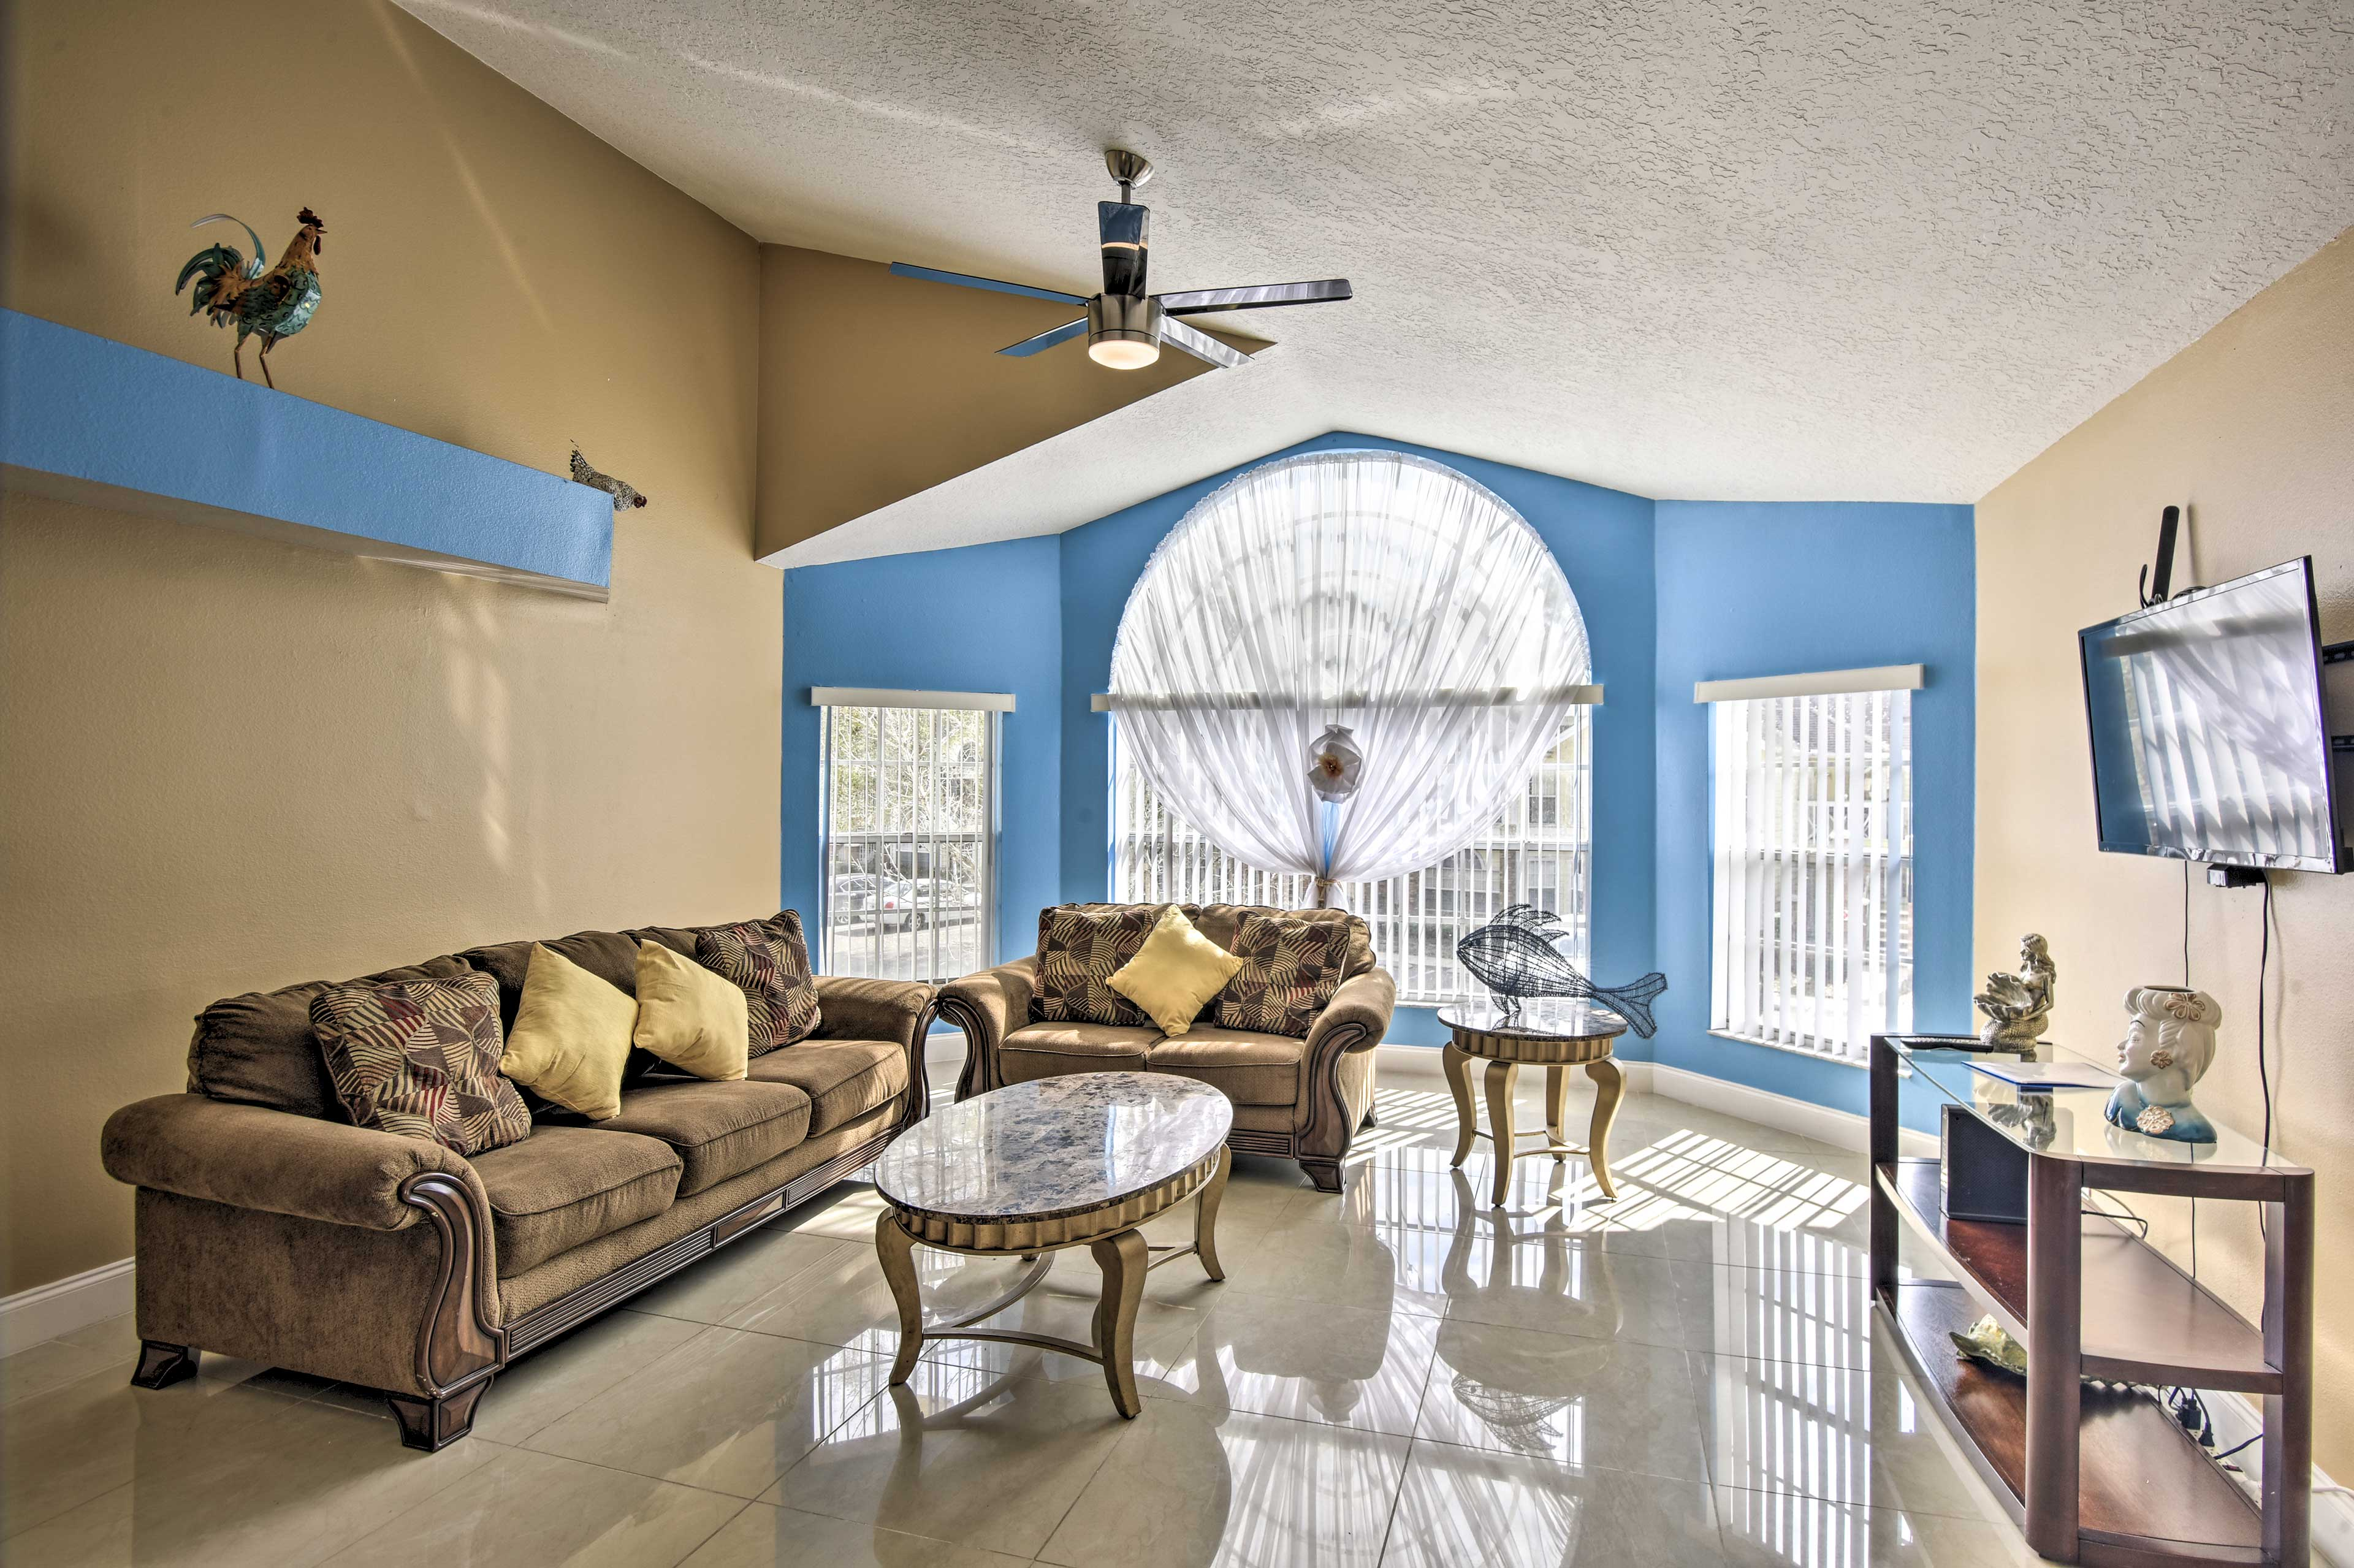 This condo offers all the comforts of home and is just 15 minutes from Disney!